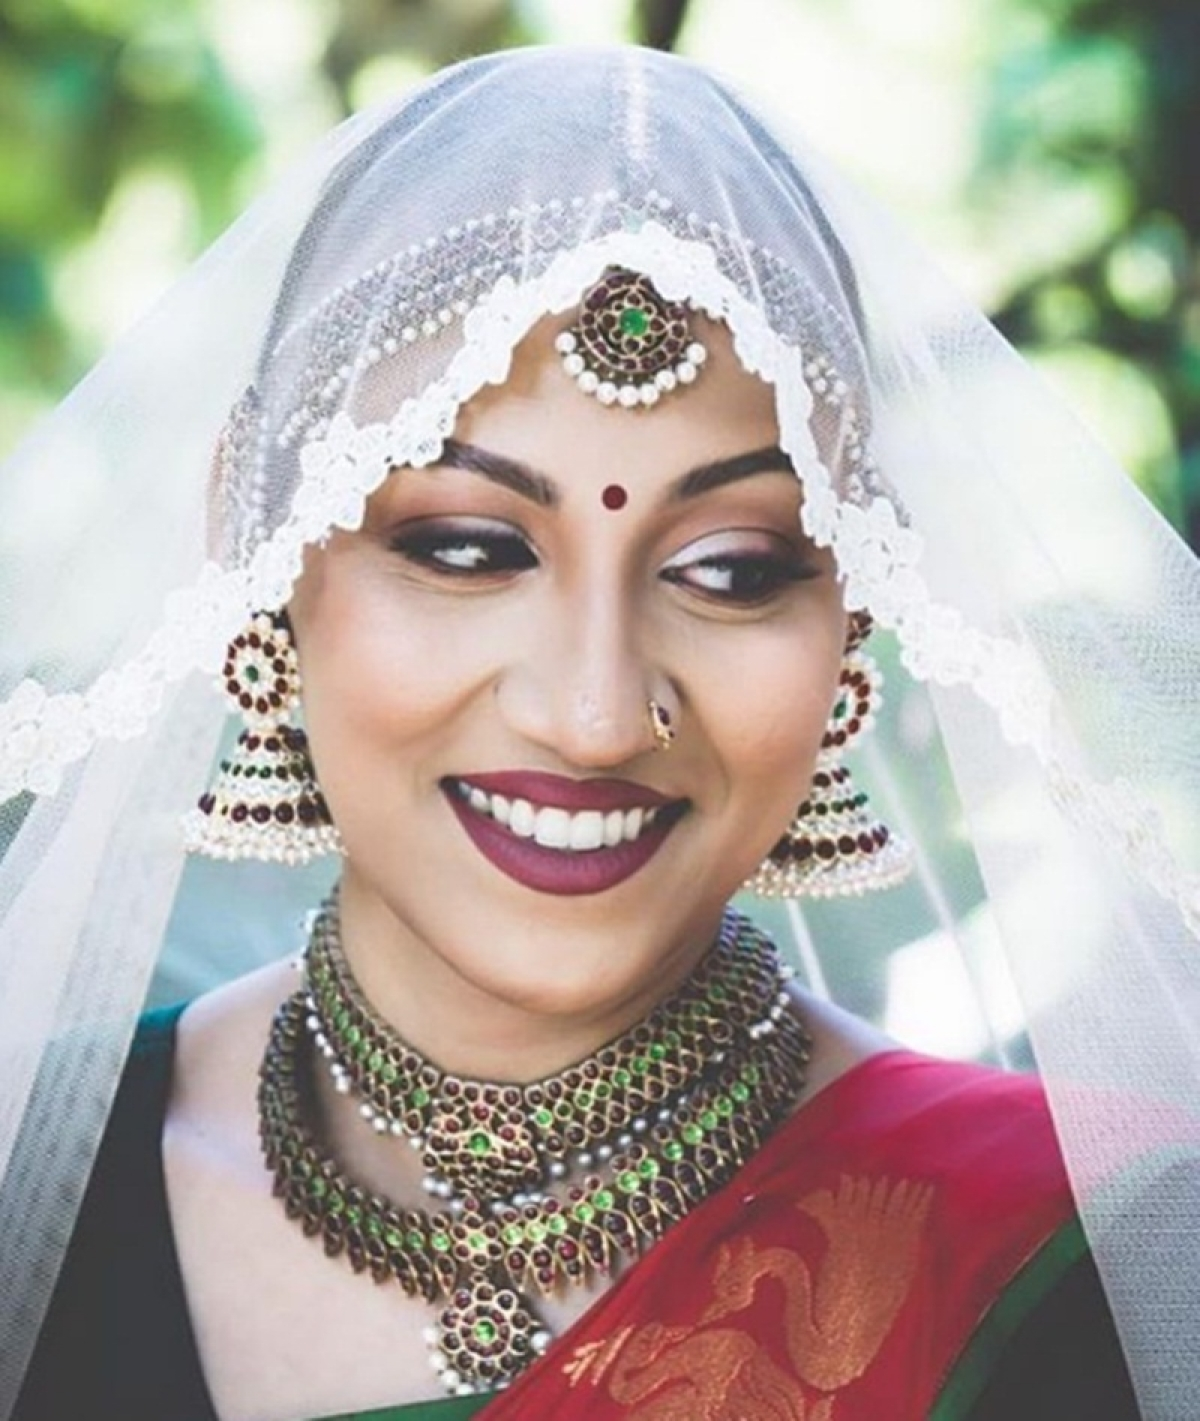 Cancer survivor's bridal photoshoot with an inspirational message goes viral on social media